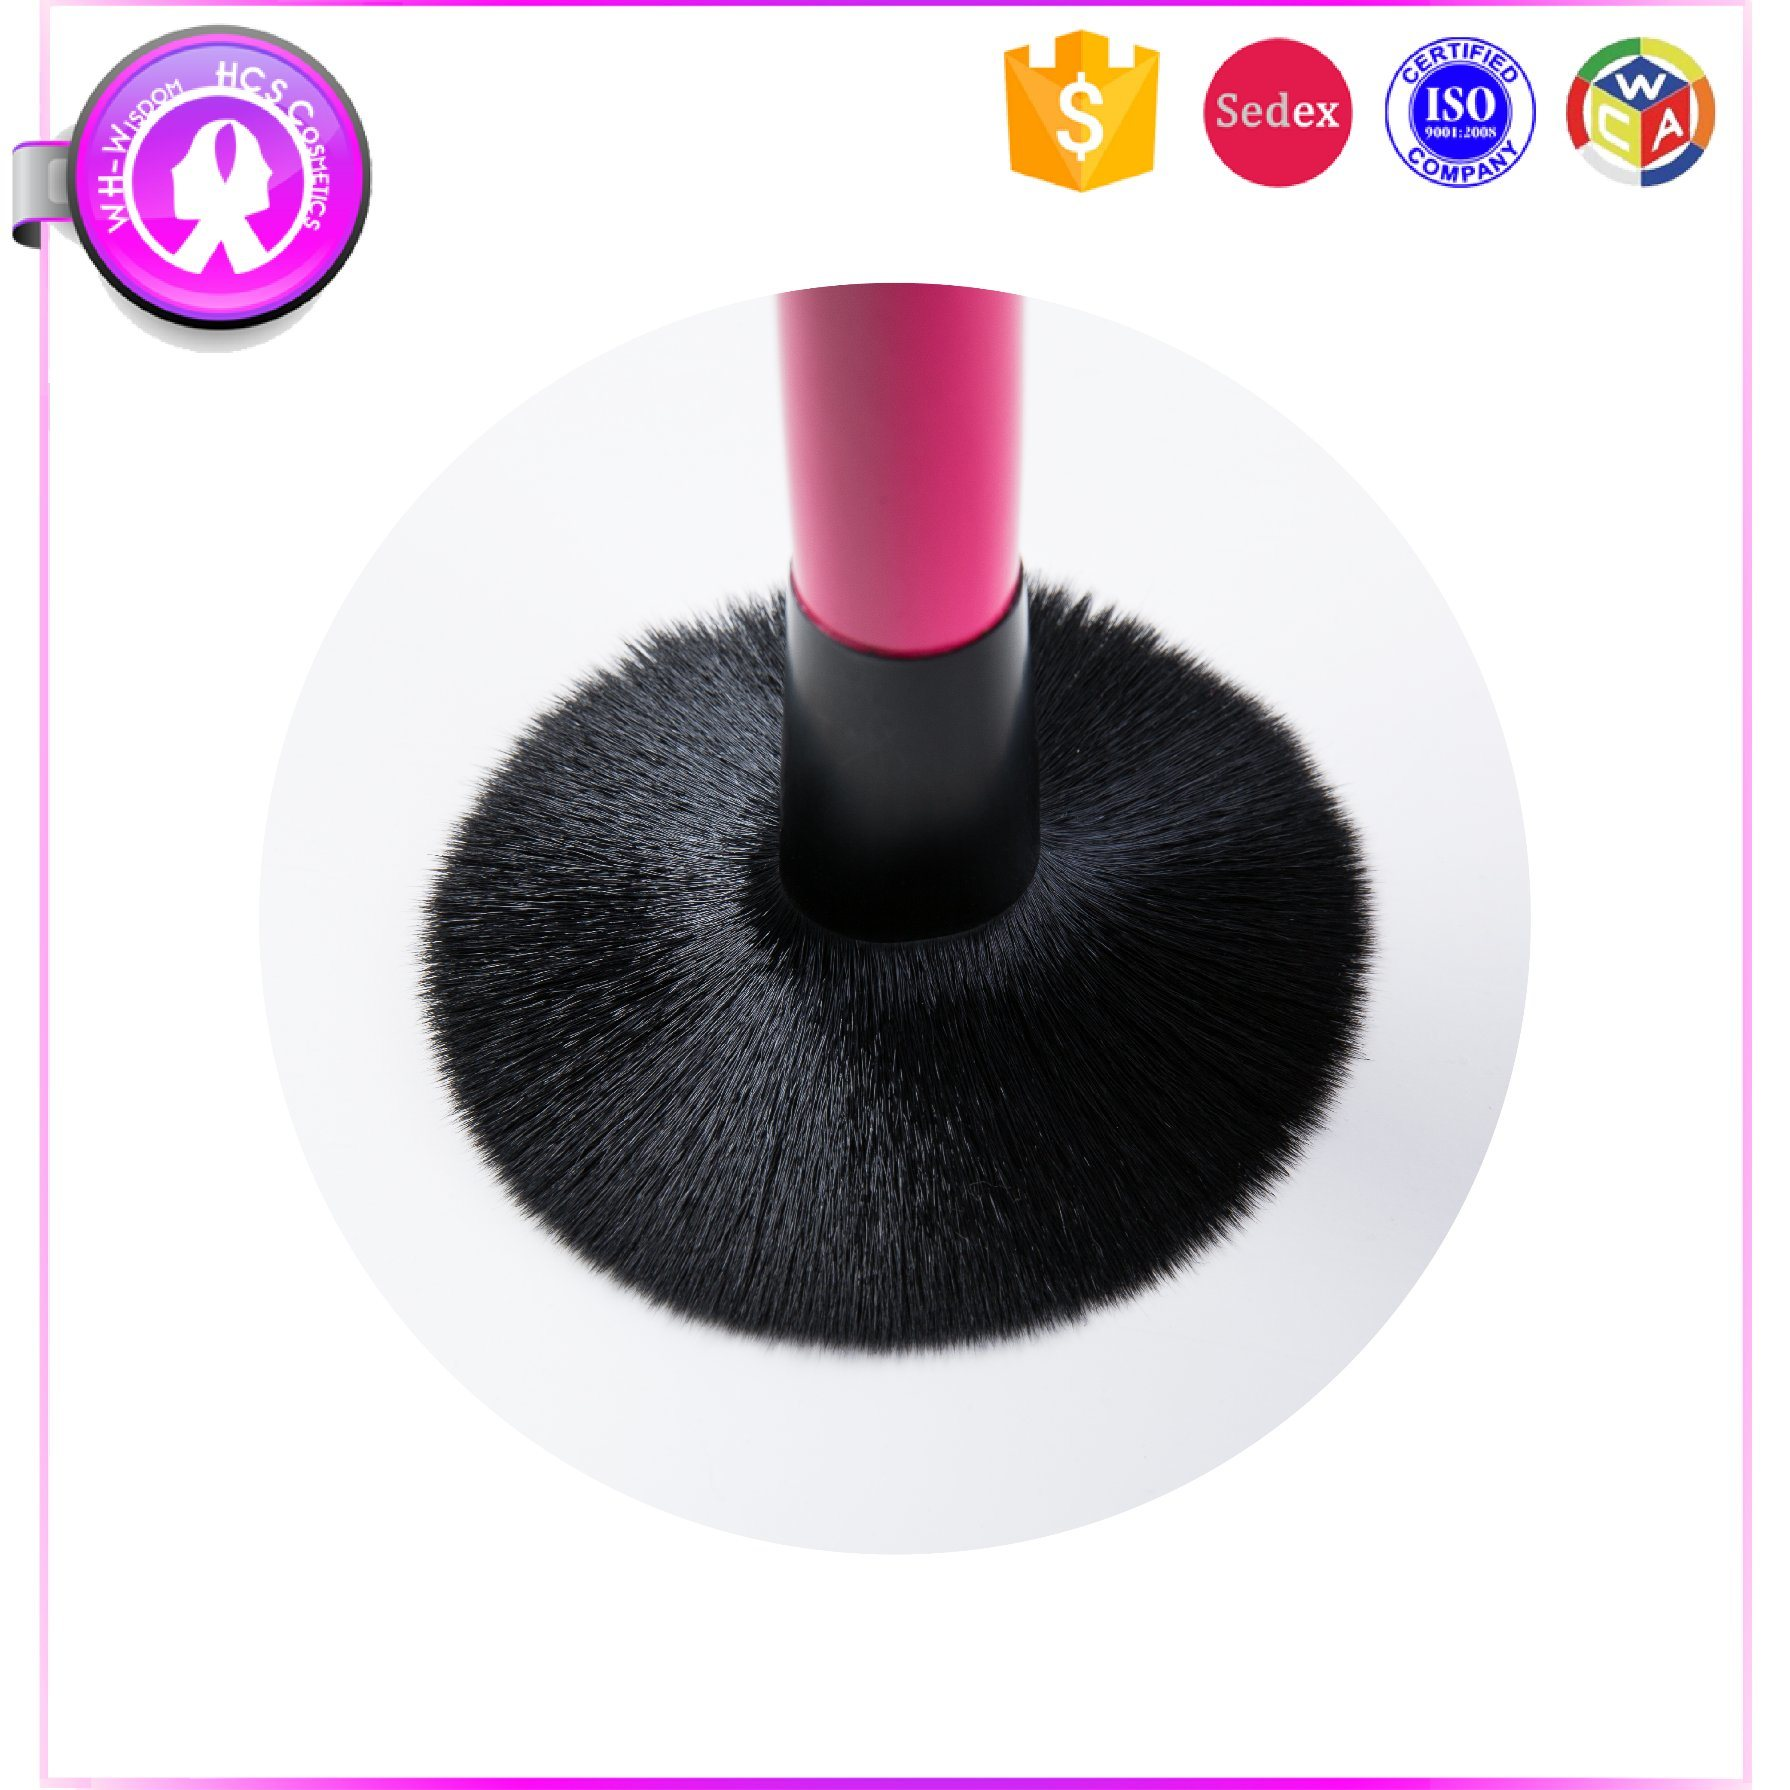 Professional 7PCS Pink Cosmetics Makeup Brush Manufacterurer